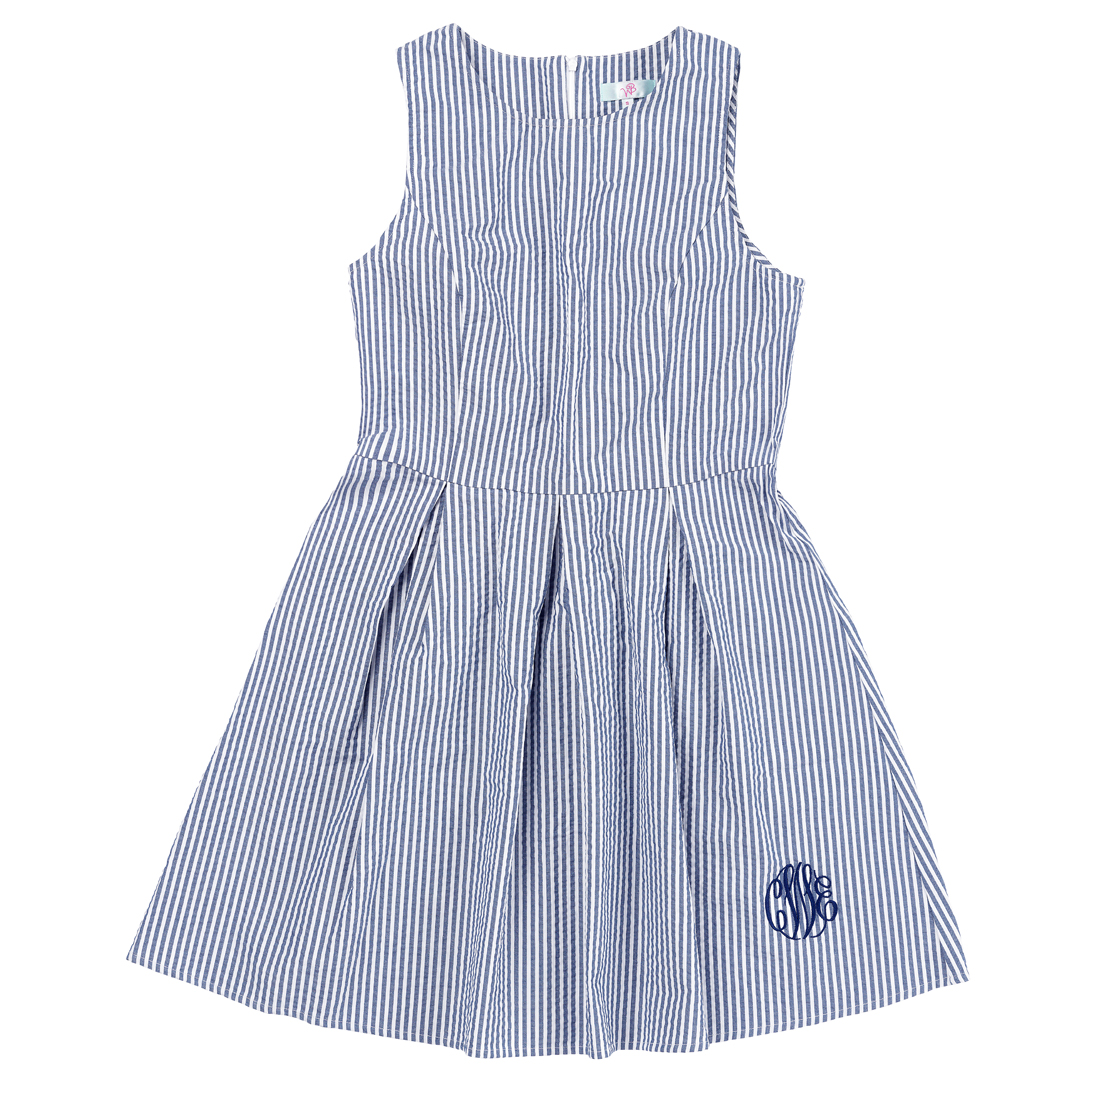 Monogrammed Navy Seersucker Dress